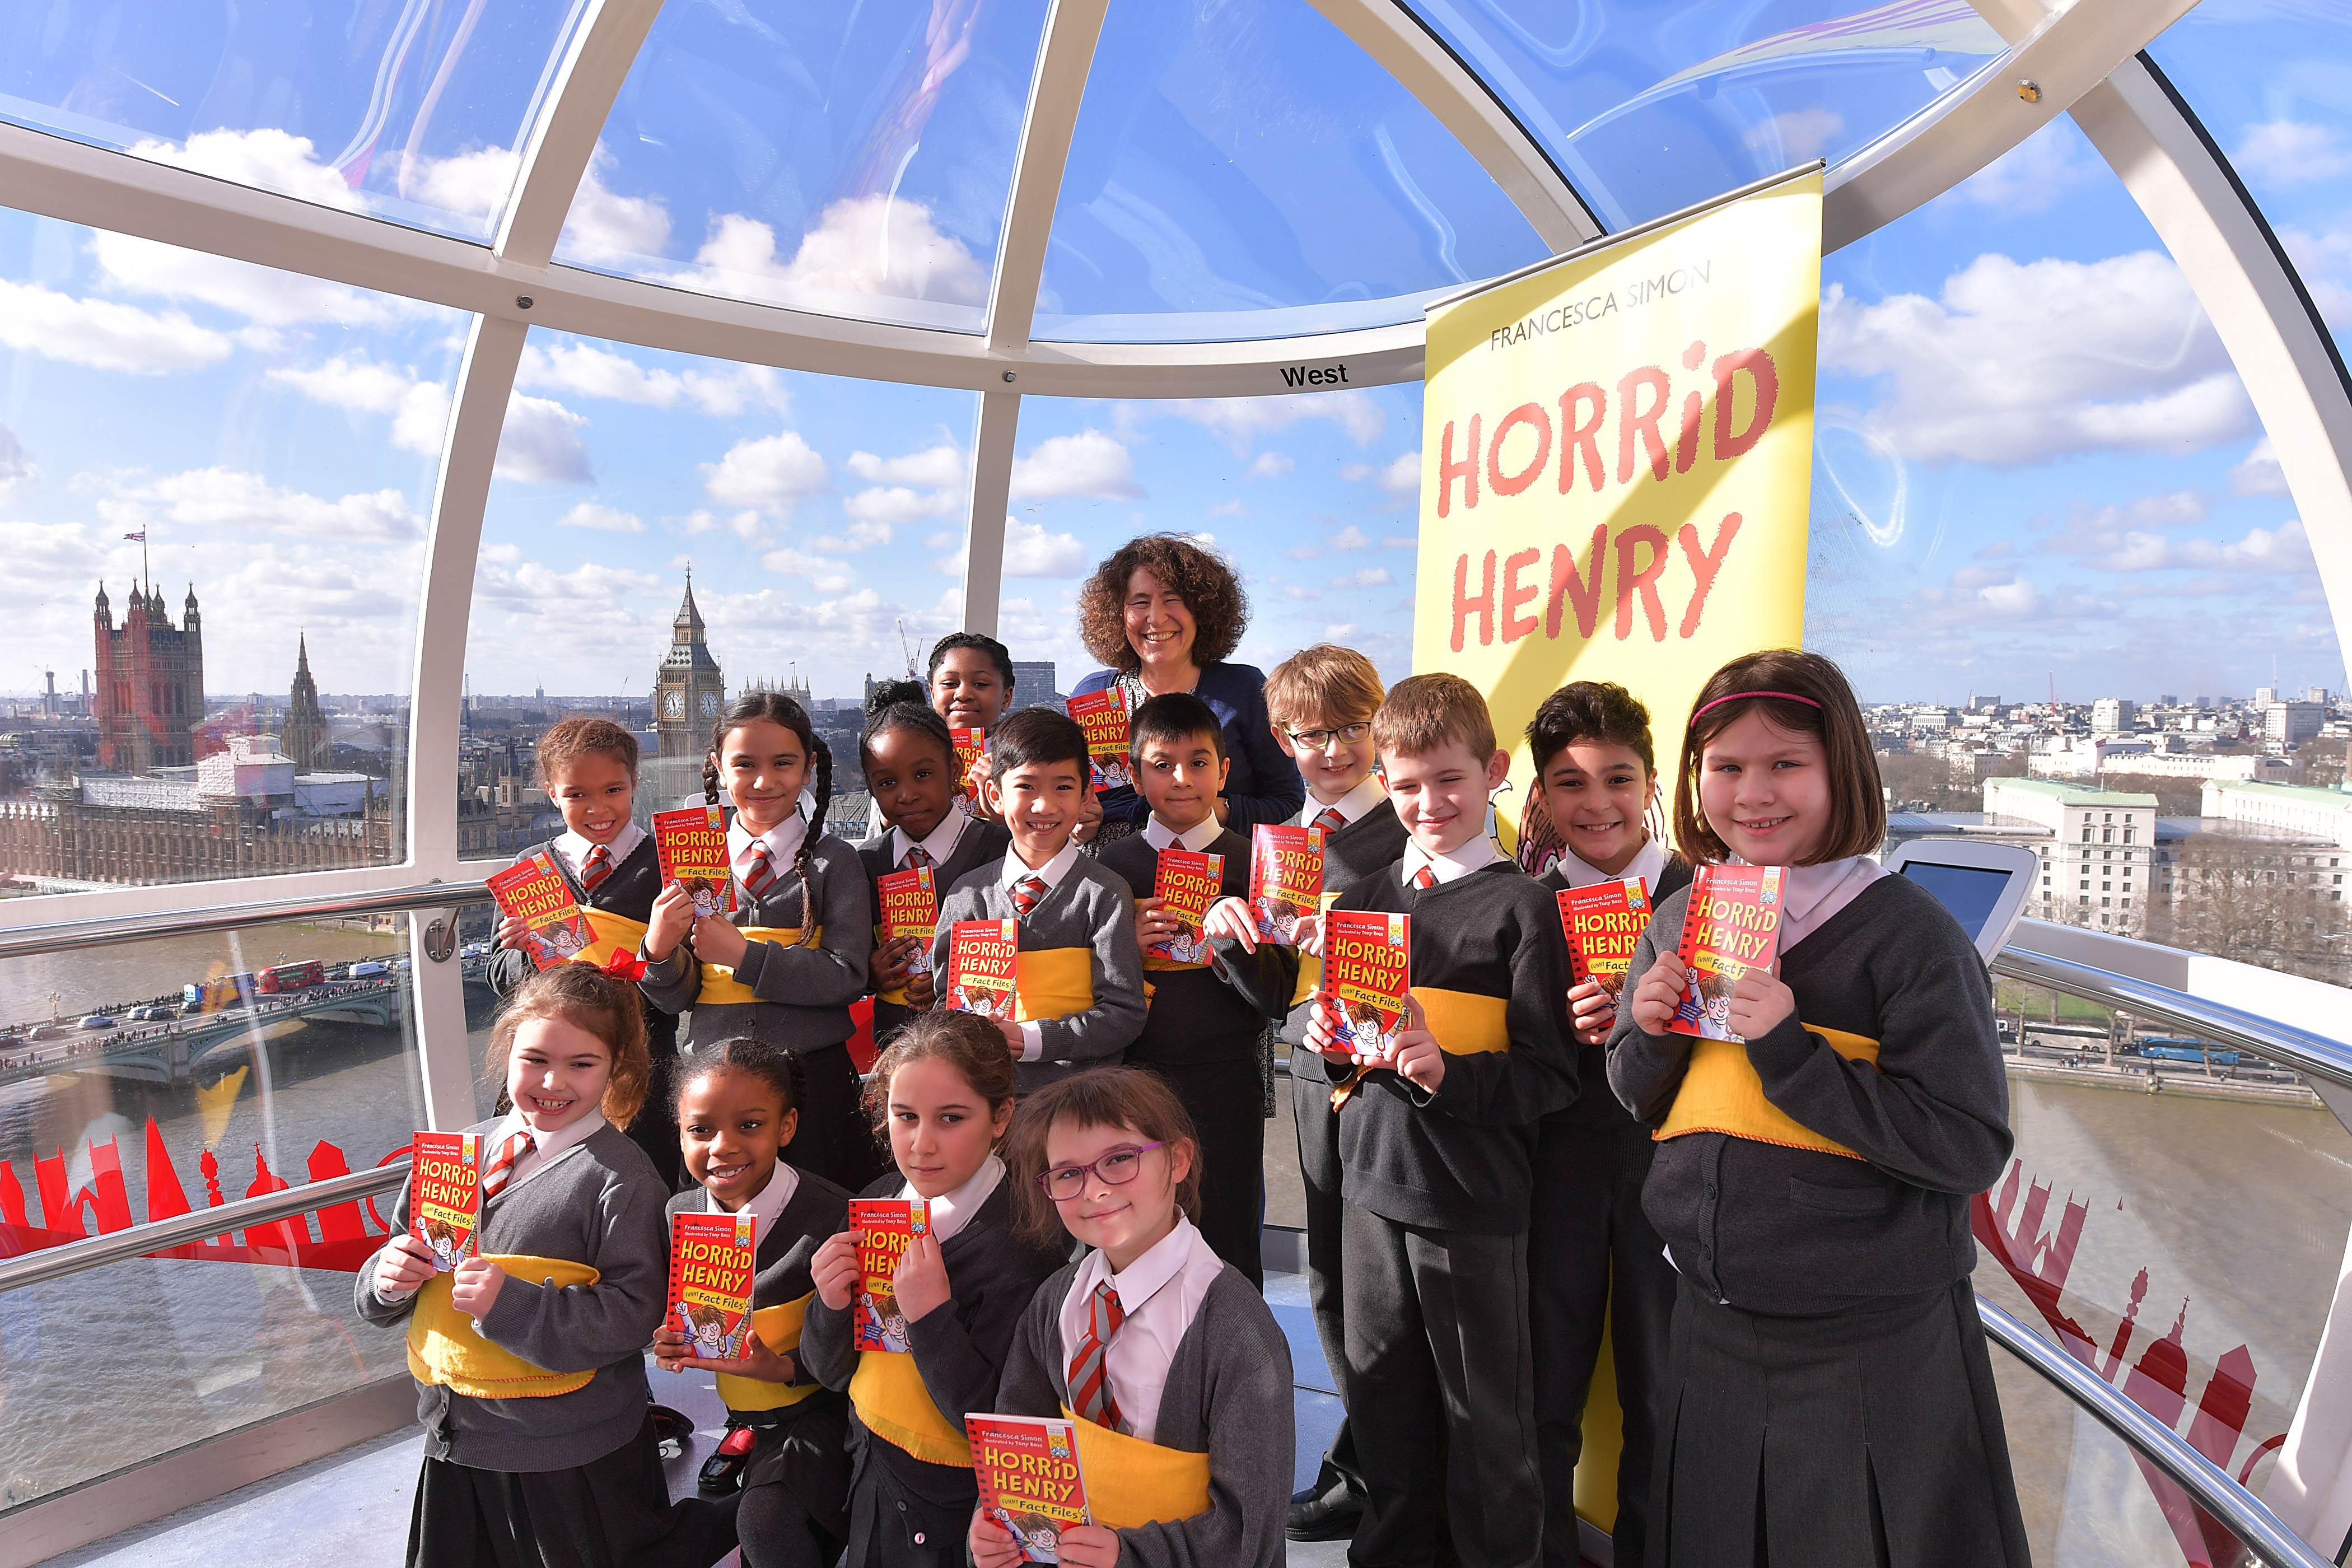 Children celebrating Horrid Henry on London Eye